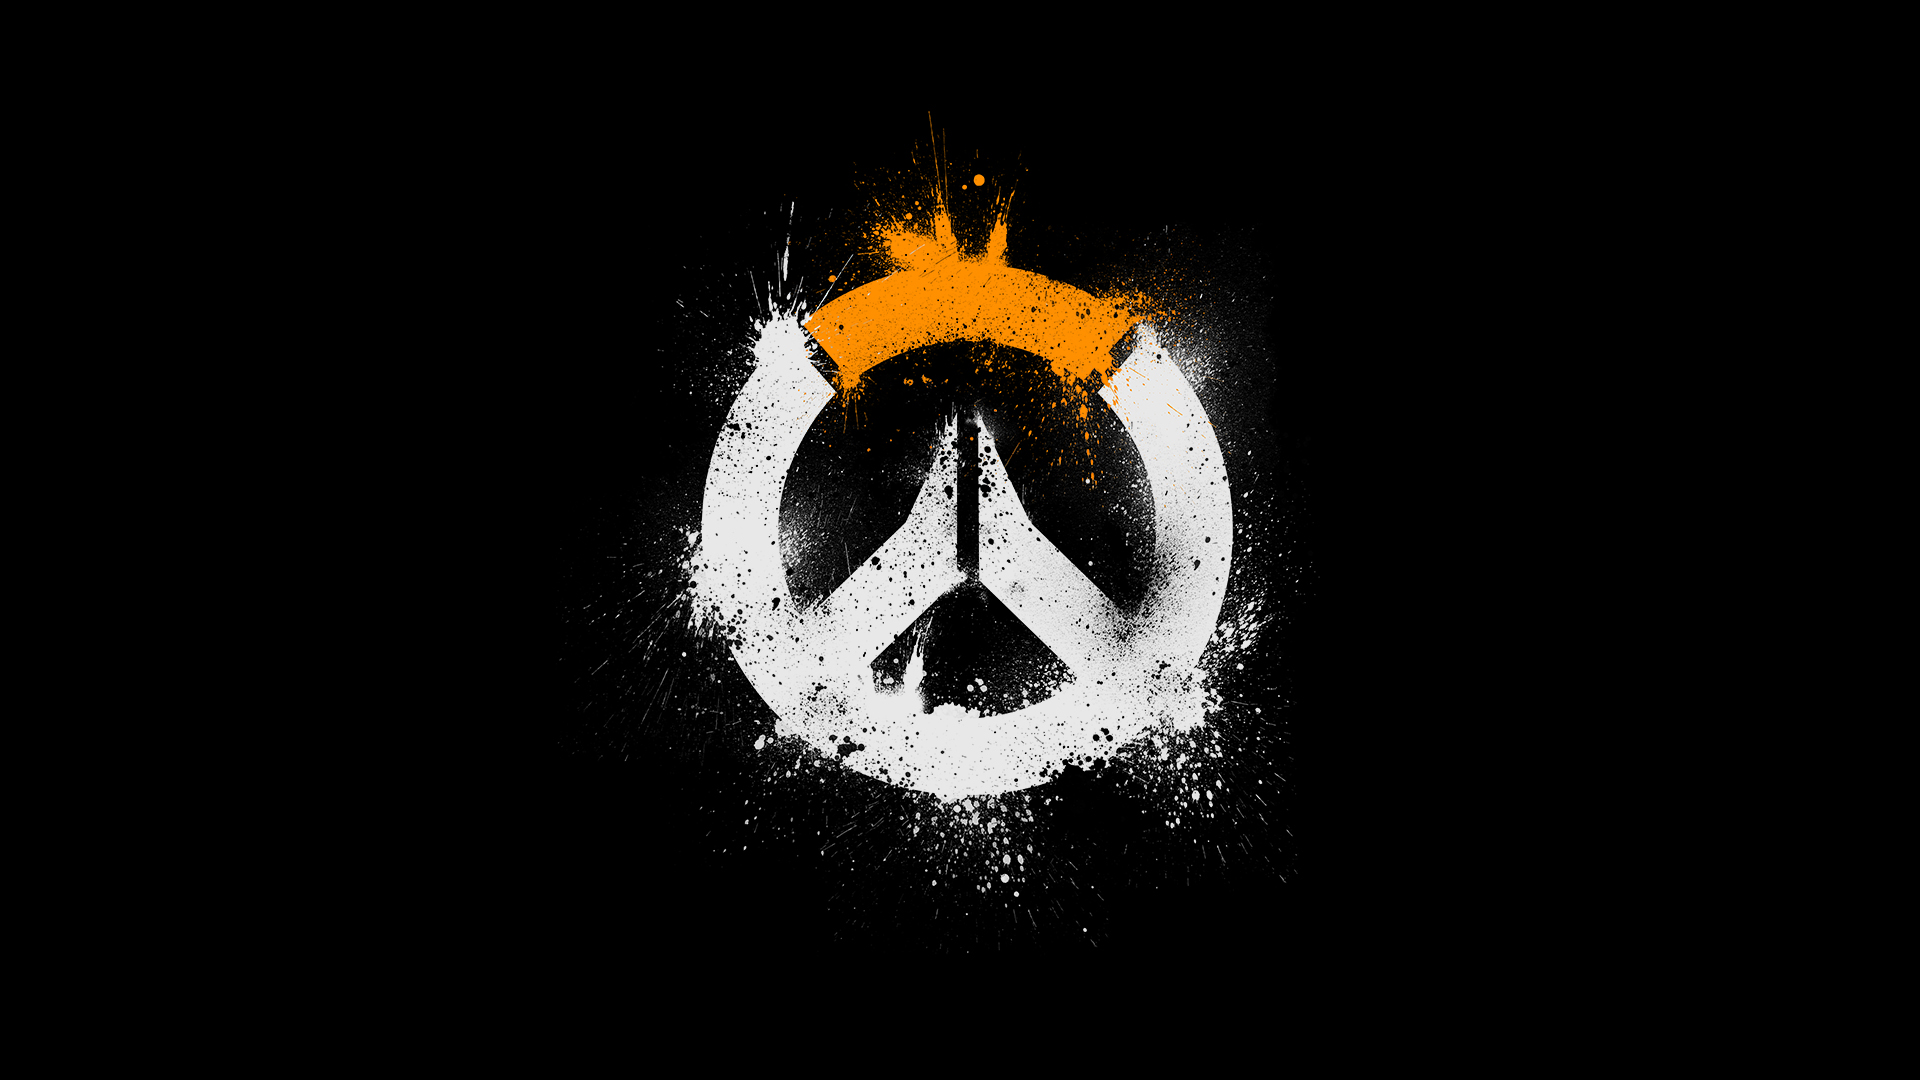 overwatch logo hd, hd games, 4k wallpapers, images, backgrounds